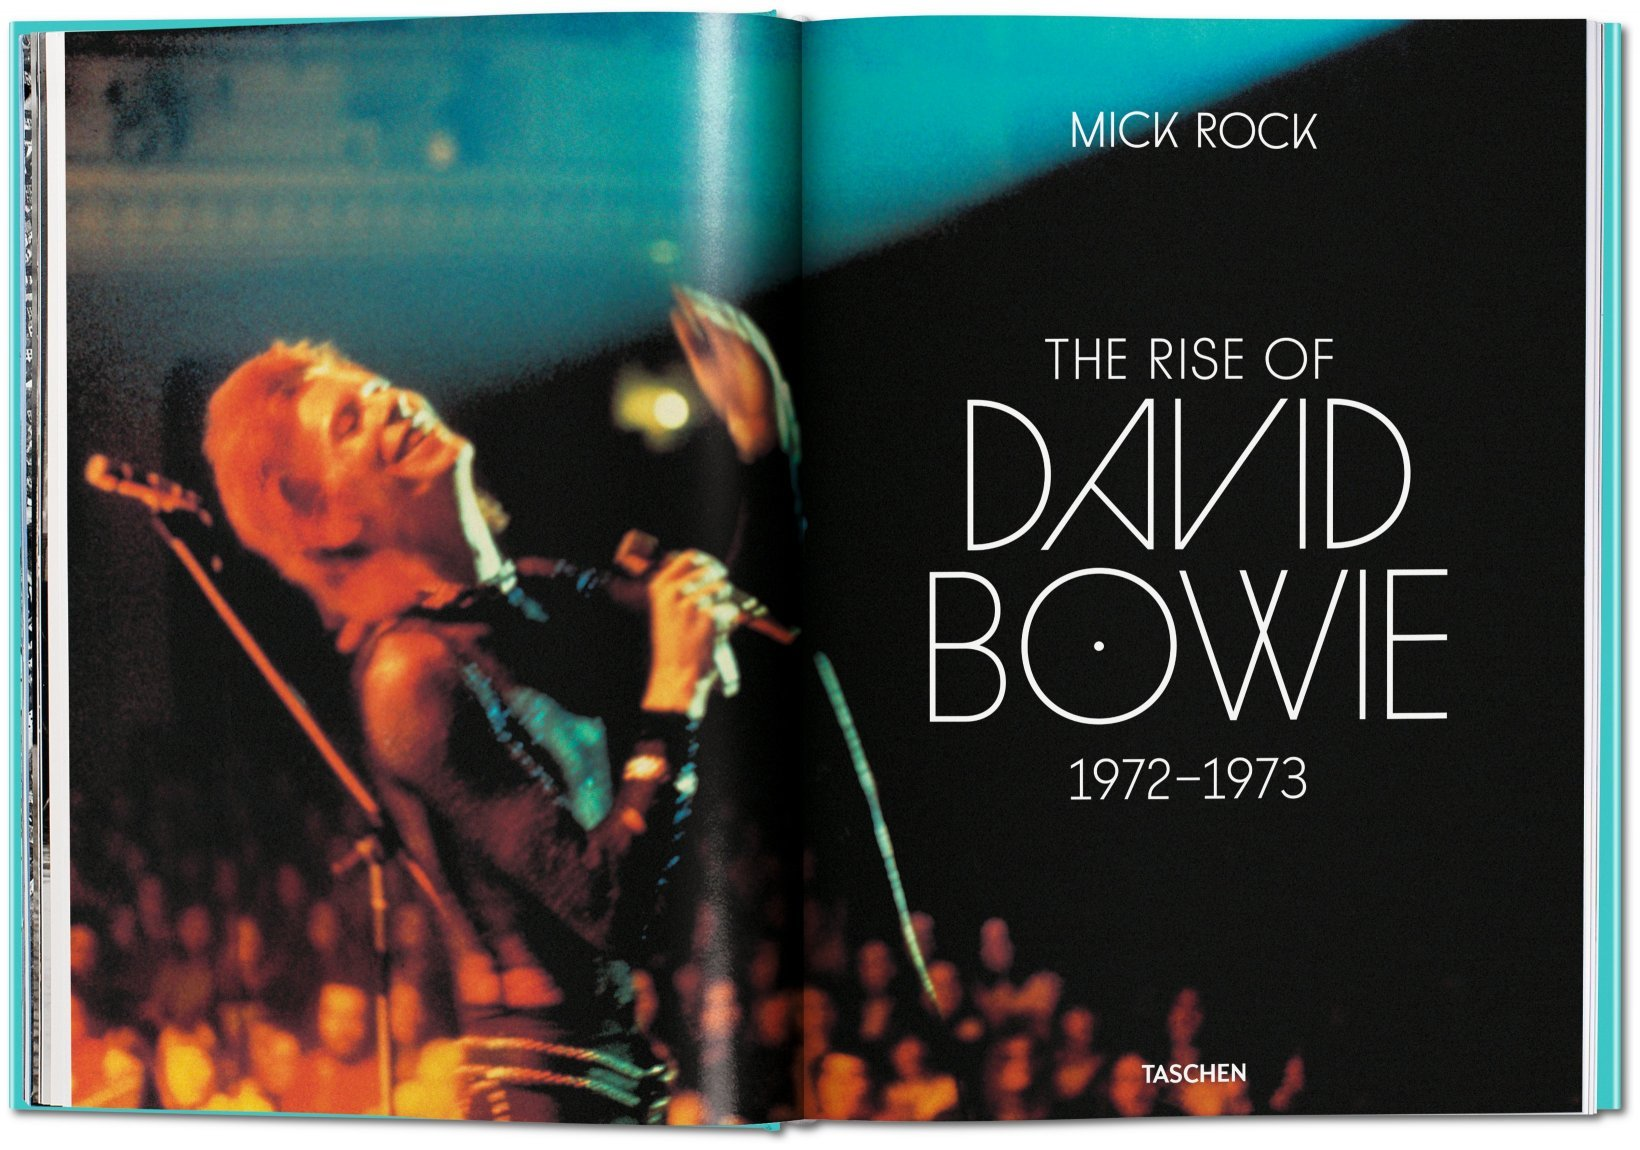 The Rise Of David Bowie 1972 1973 Image 4